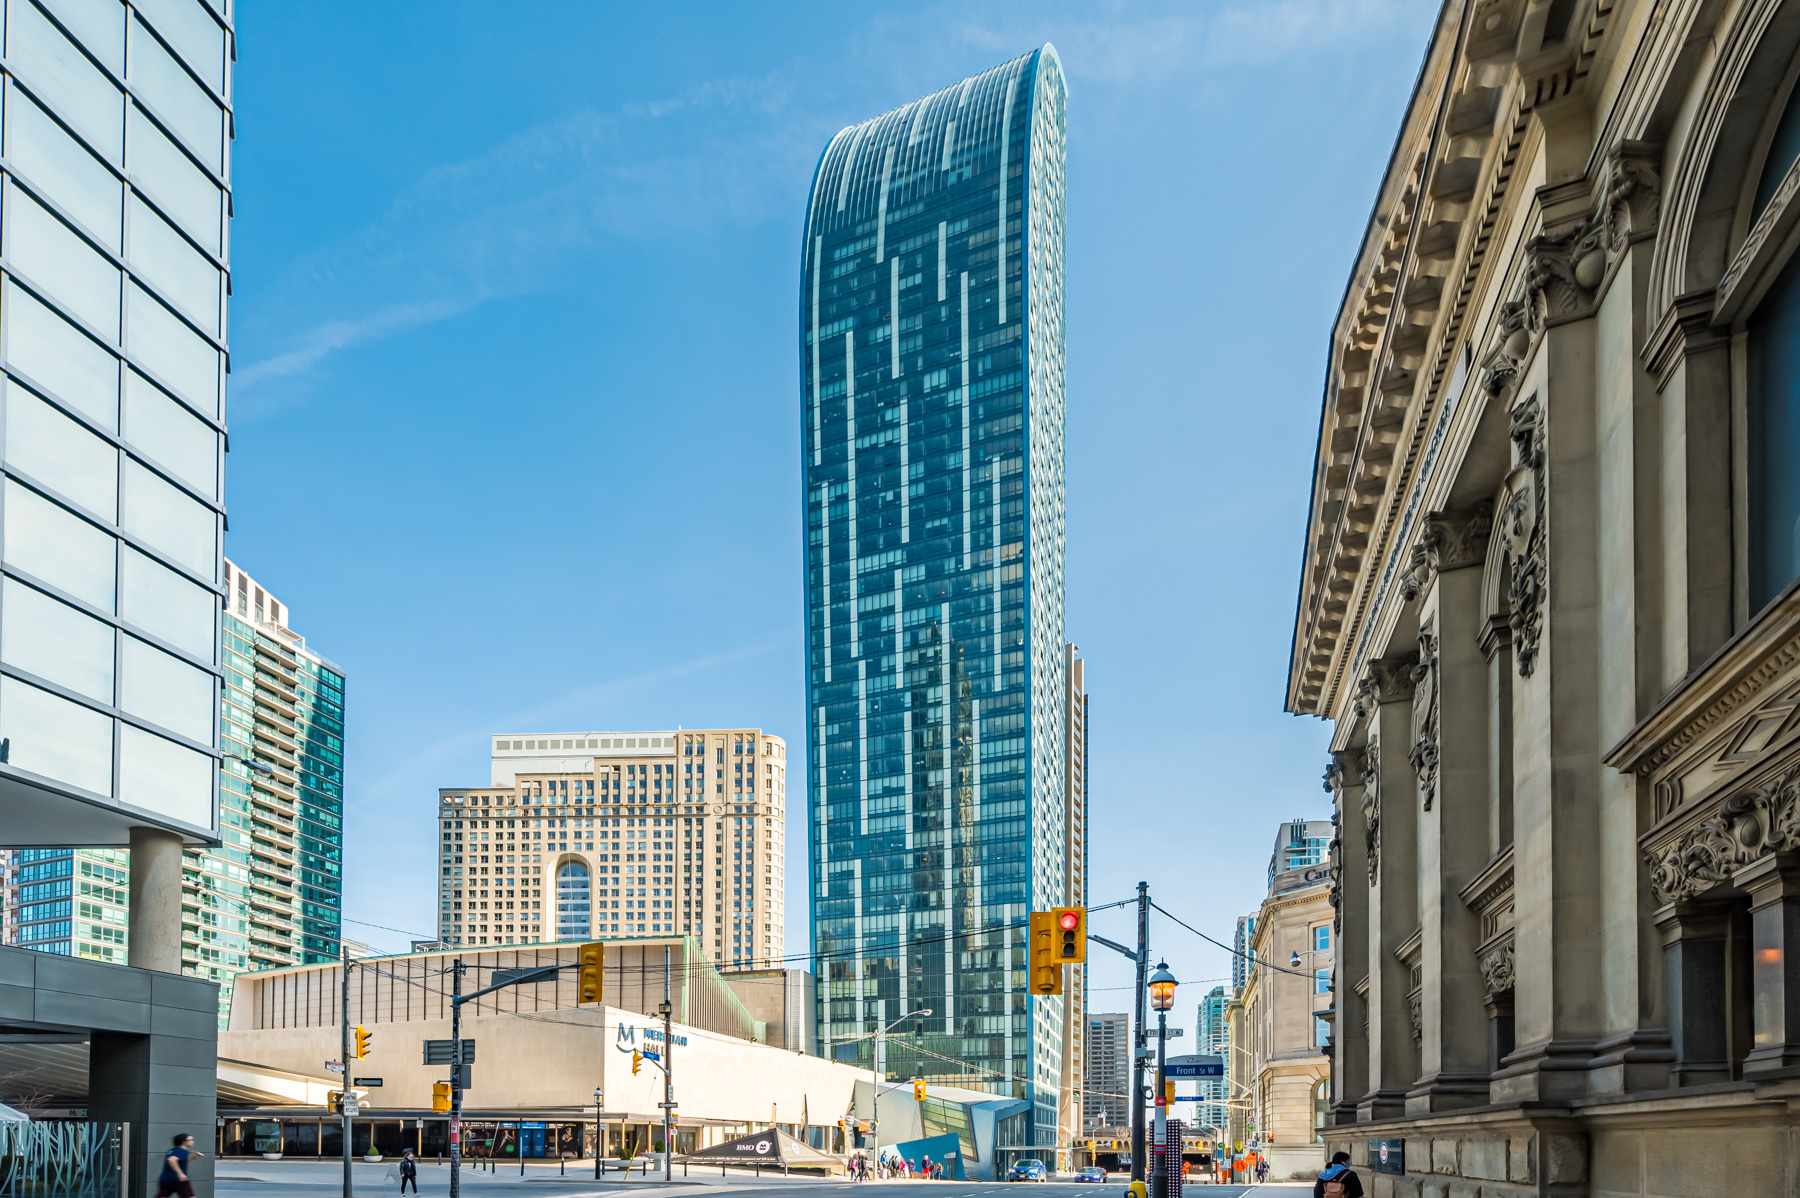 Long distance photo of L Tower condo in Toronto, showing its blue glass and curving form.